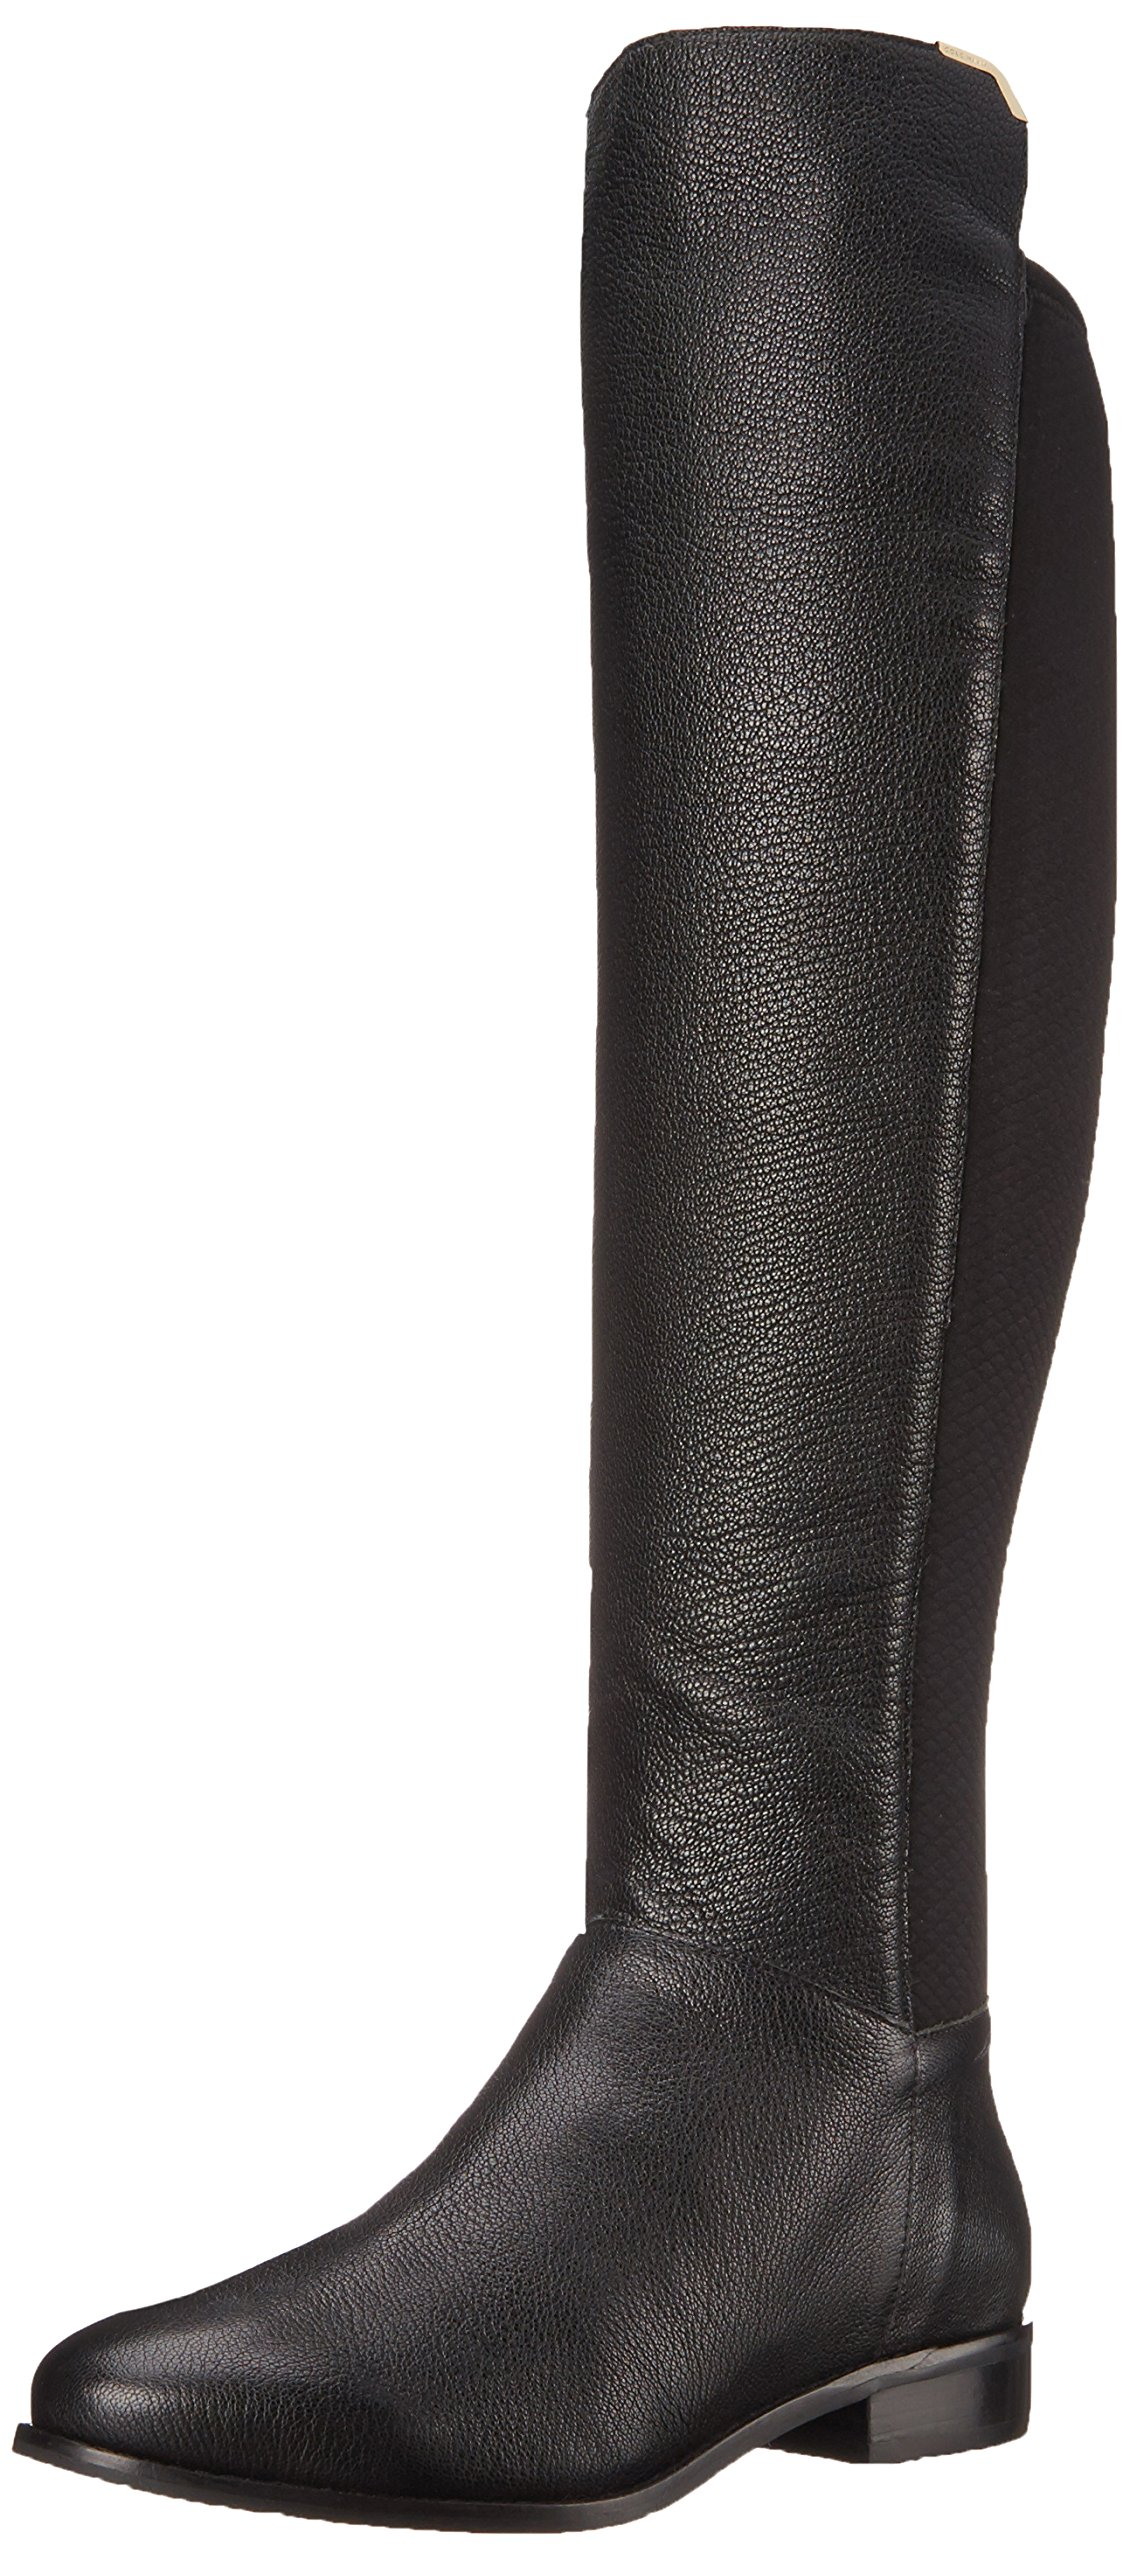 Cole Haan Women's Dutchess OTK Motorcycle Boot, Black Leather, 8 B US by Cole Haan